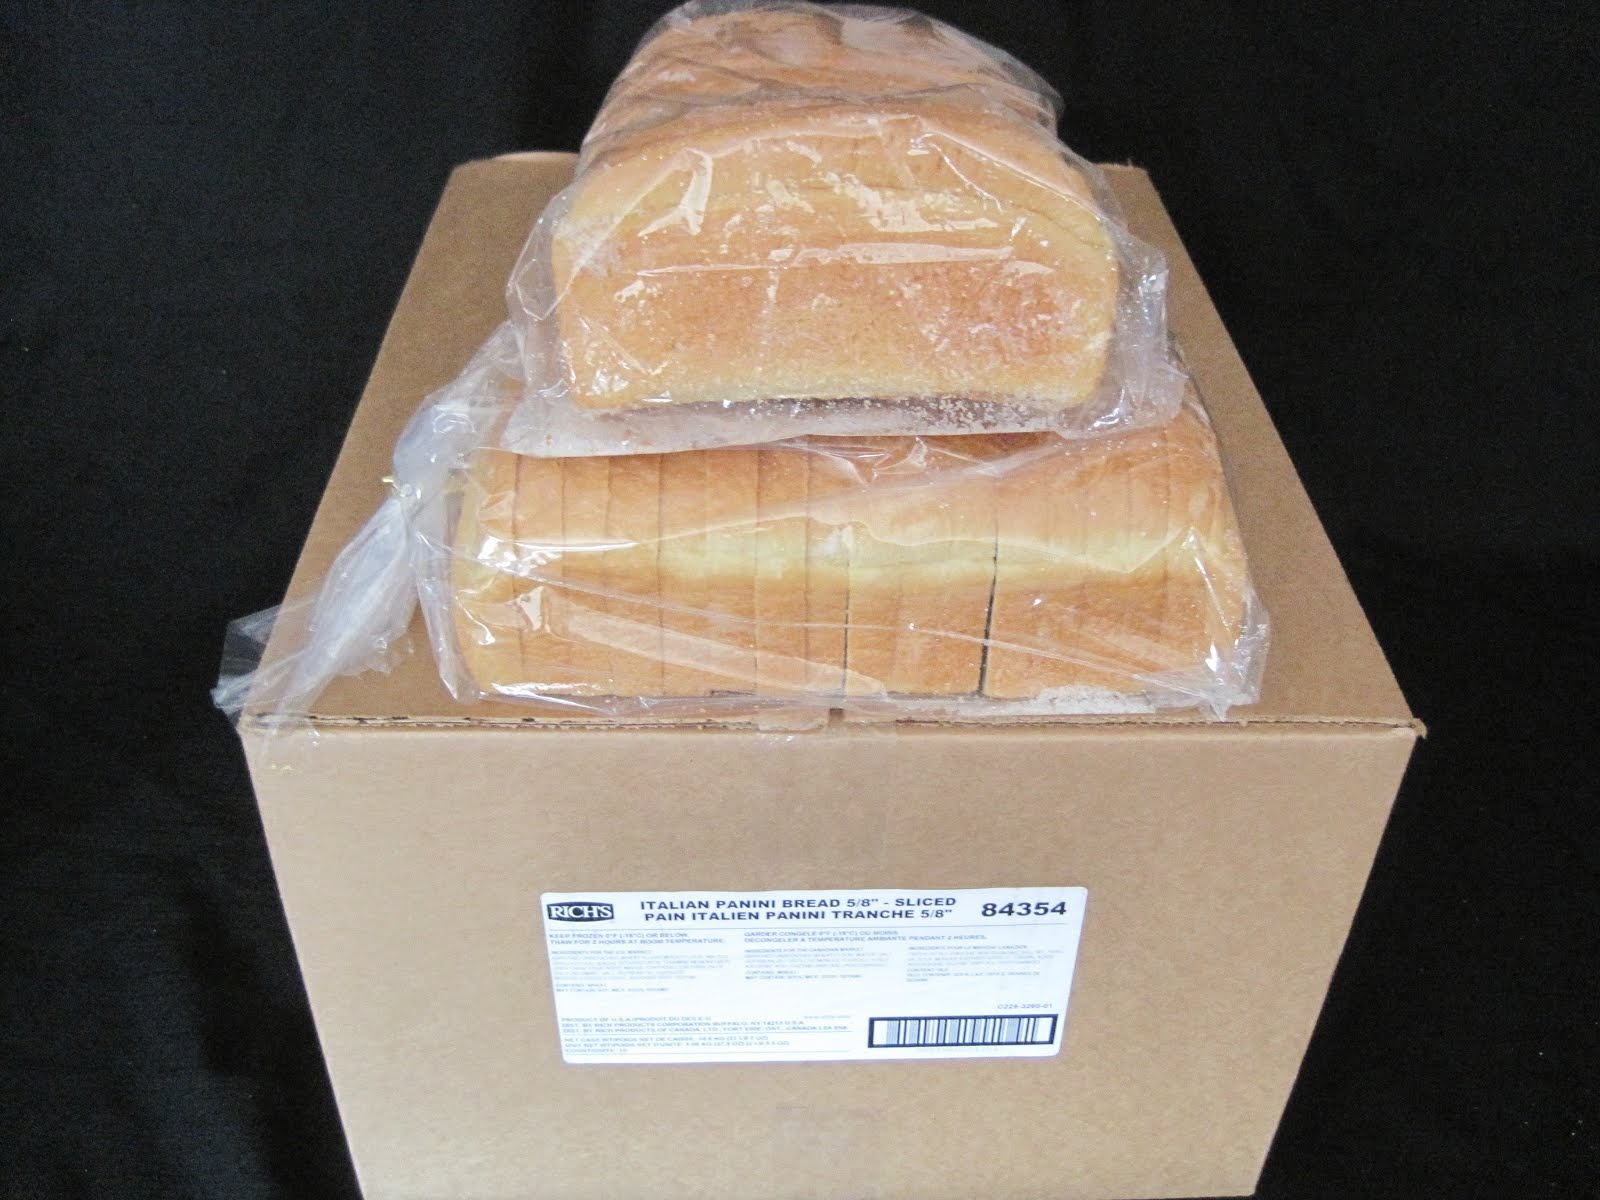 Panini Bread Sliced 10/37 oz Loafs - Item # 29255